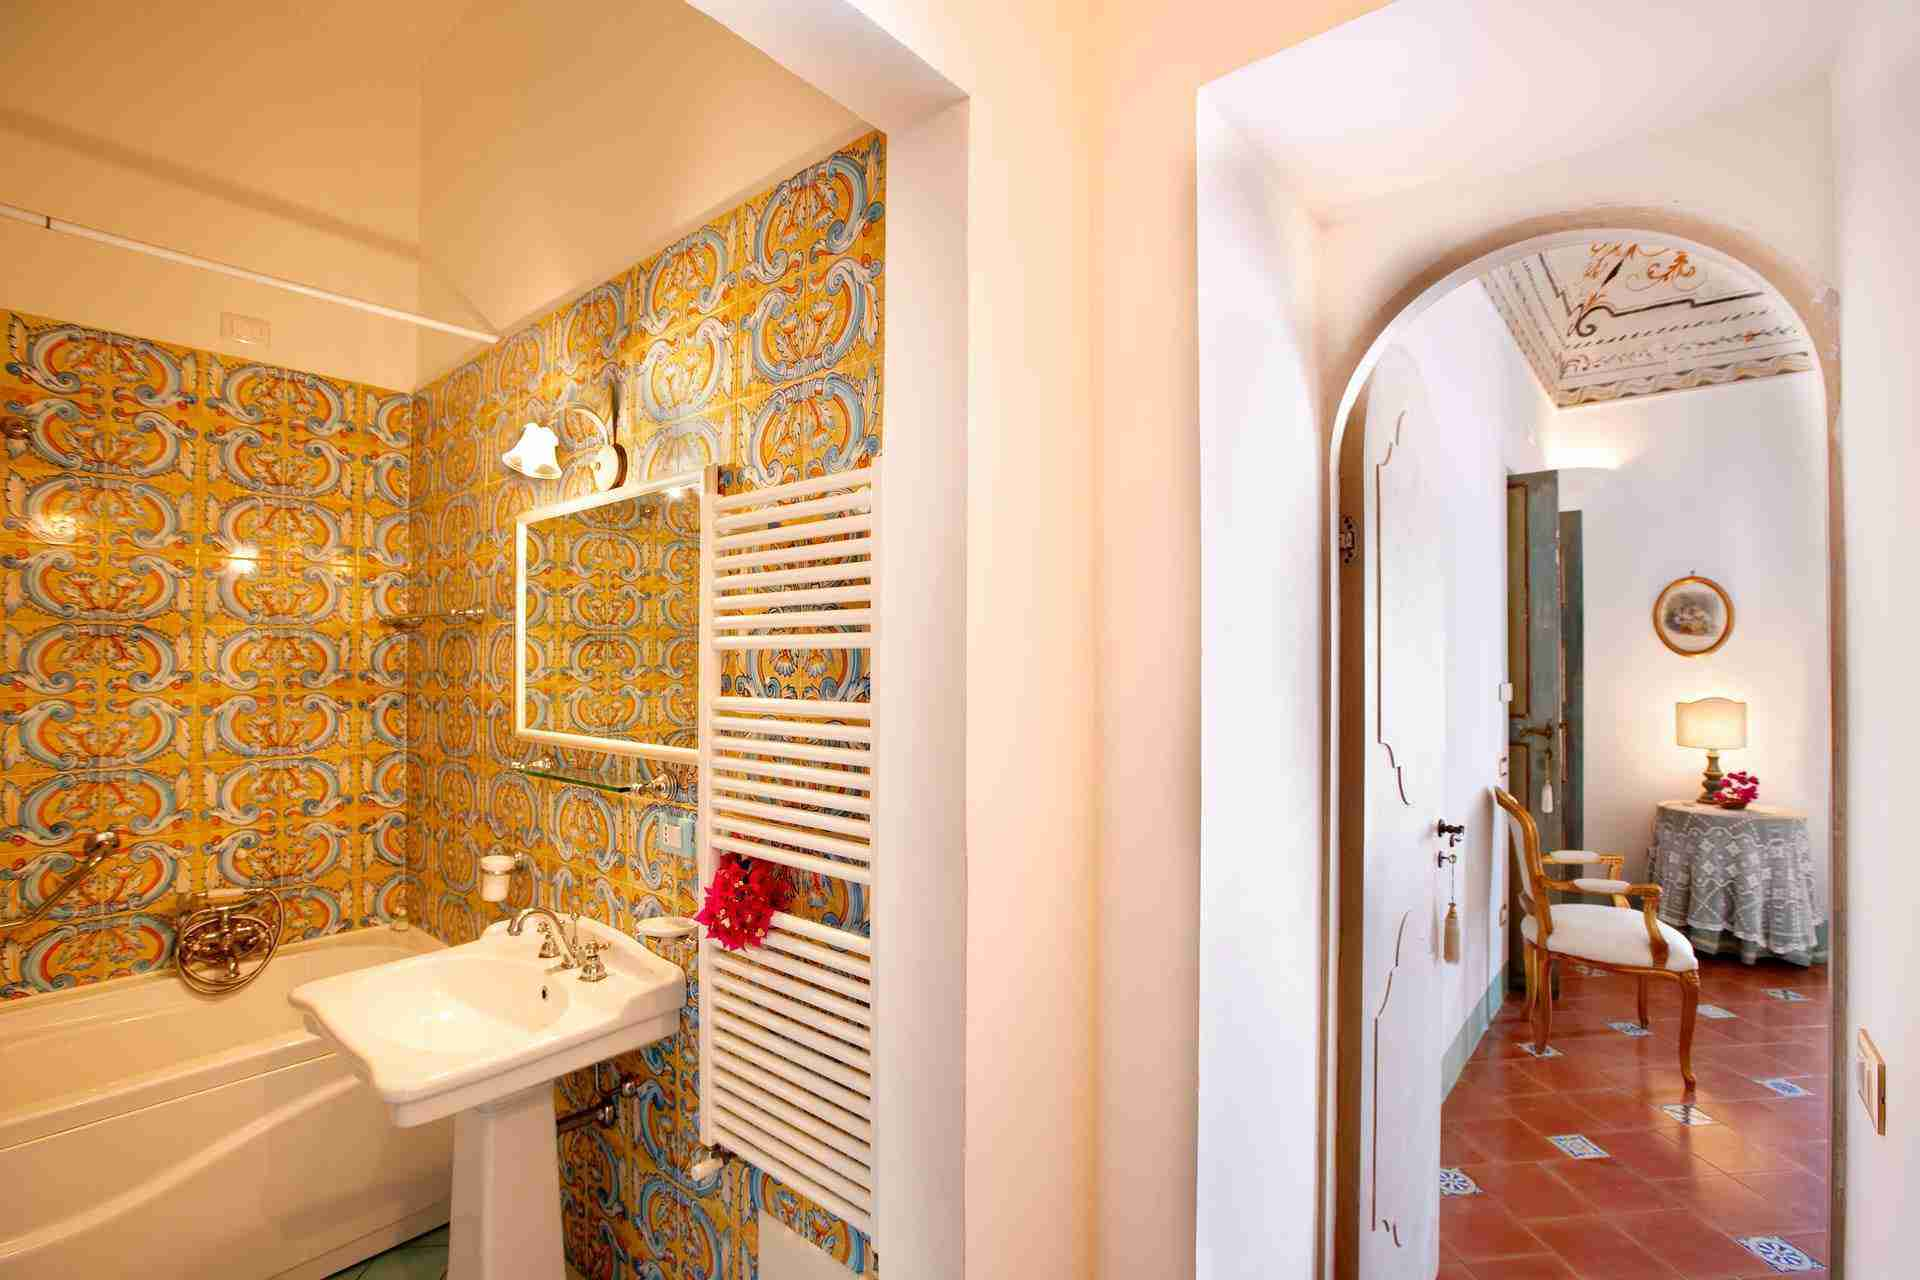 22 Positano bathroom